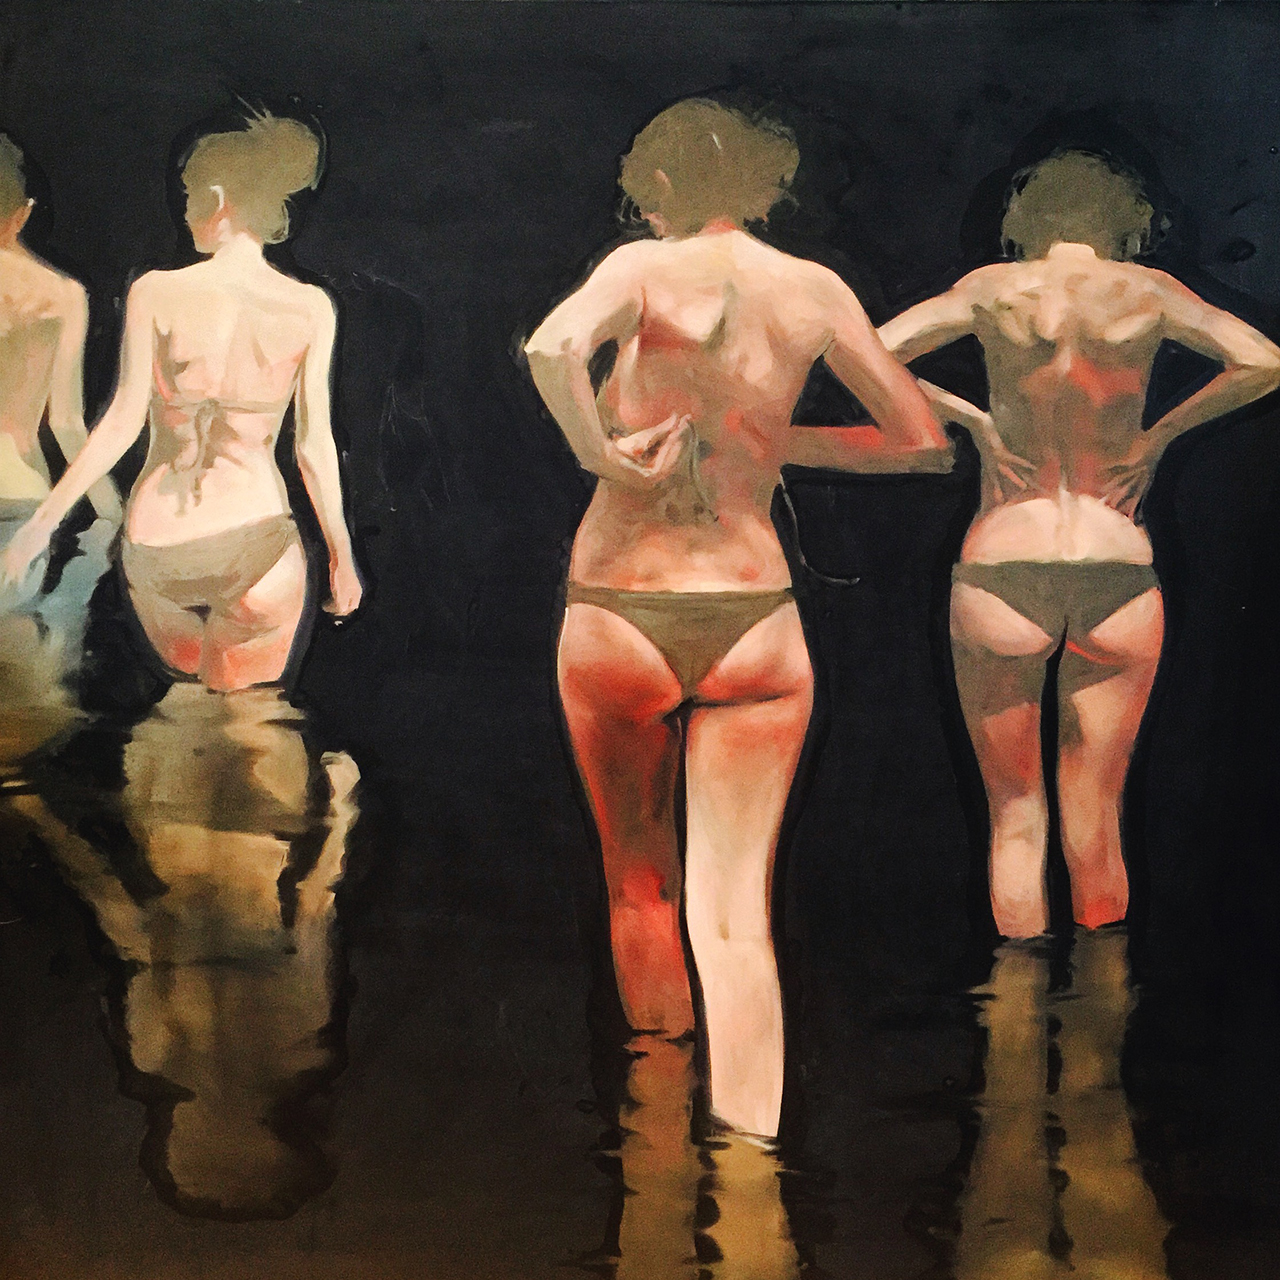 Michael Carson - Moon Swimming